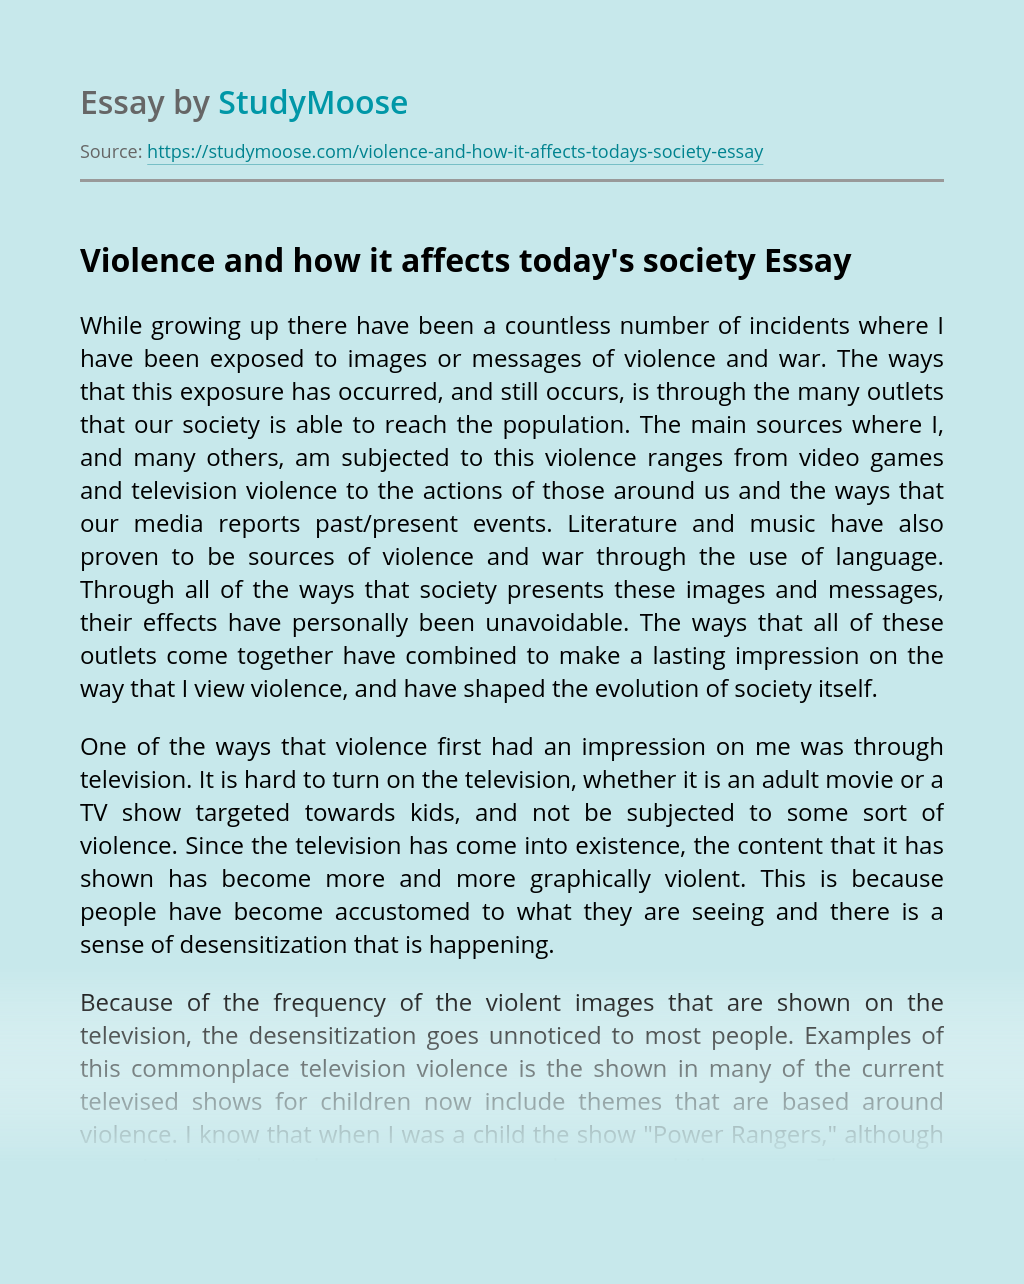 Violence and how it affects today's society